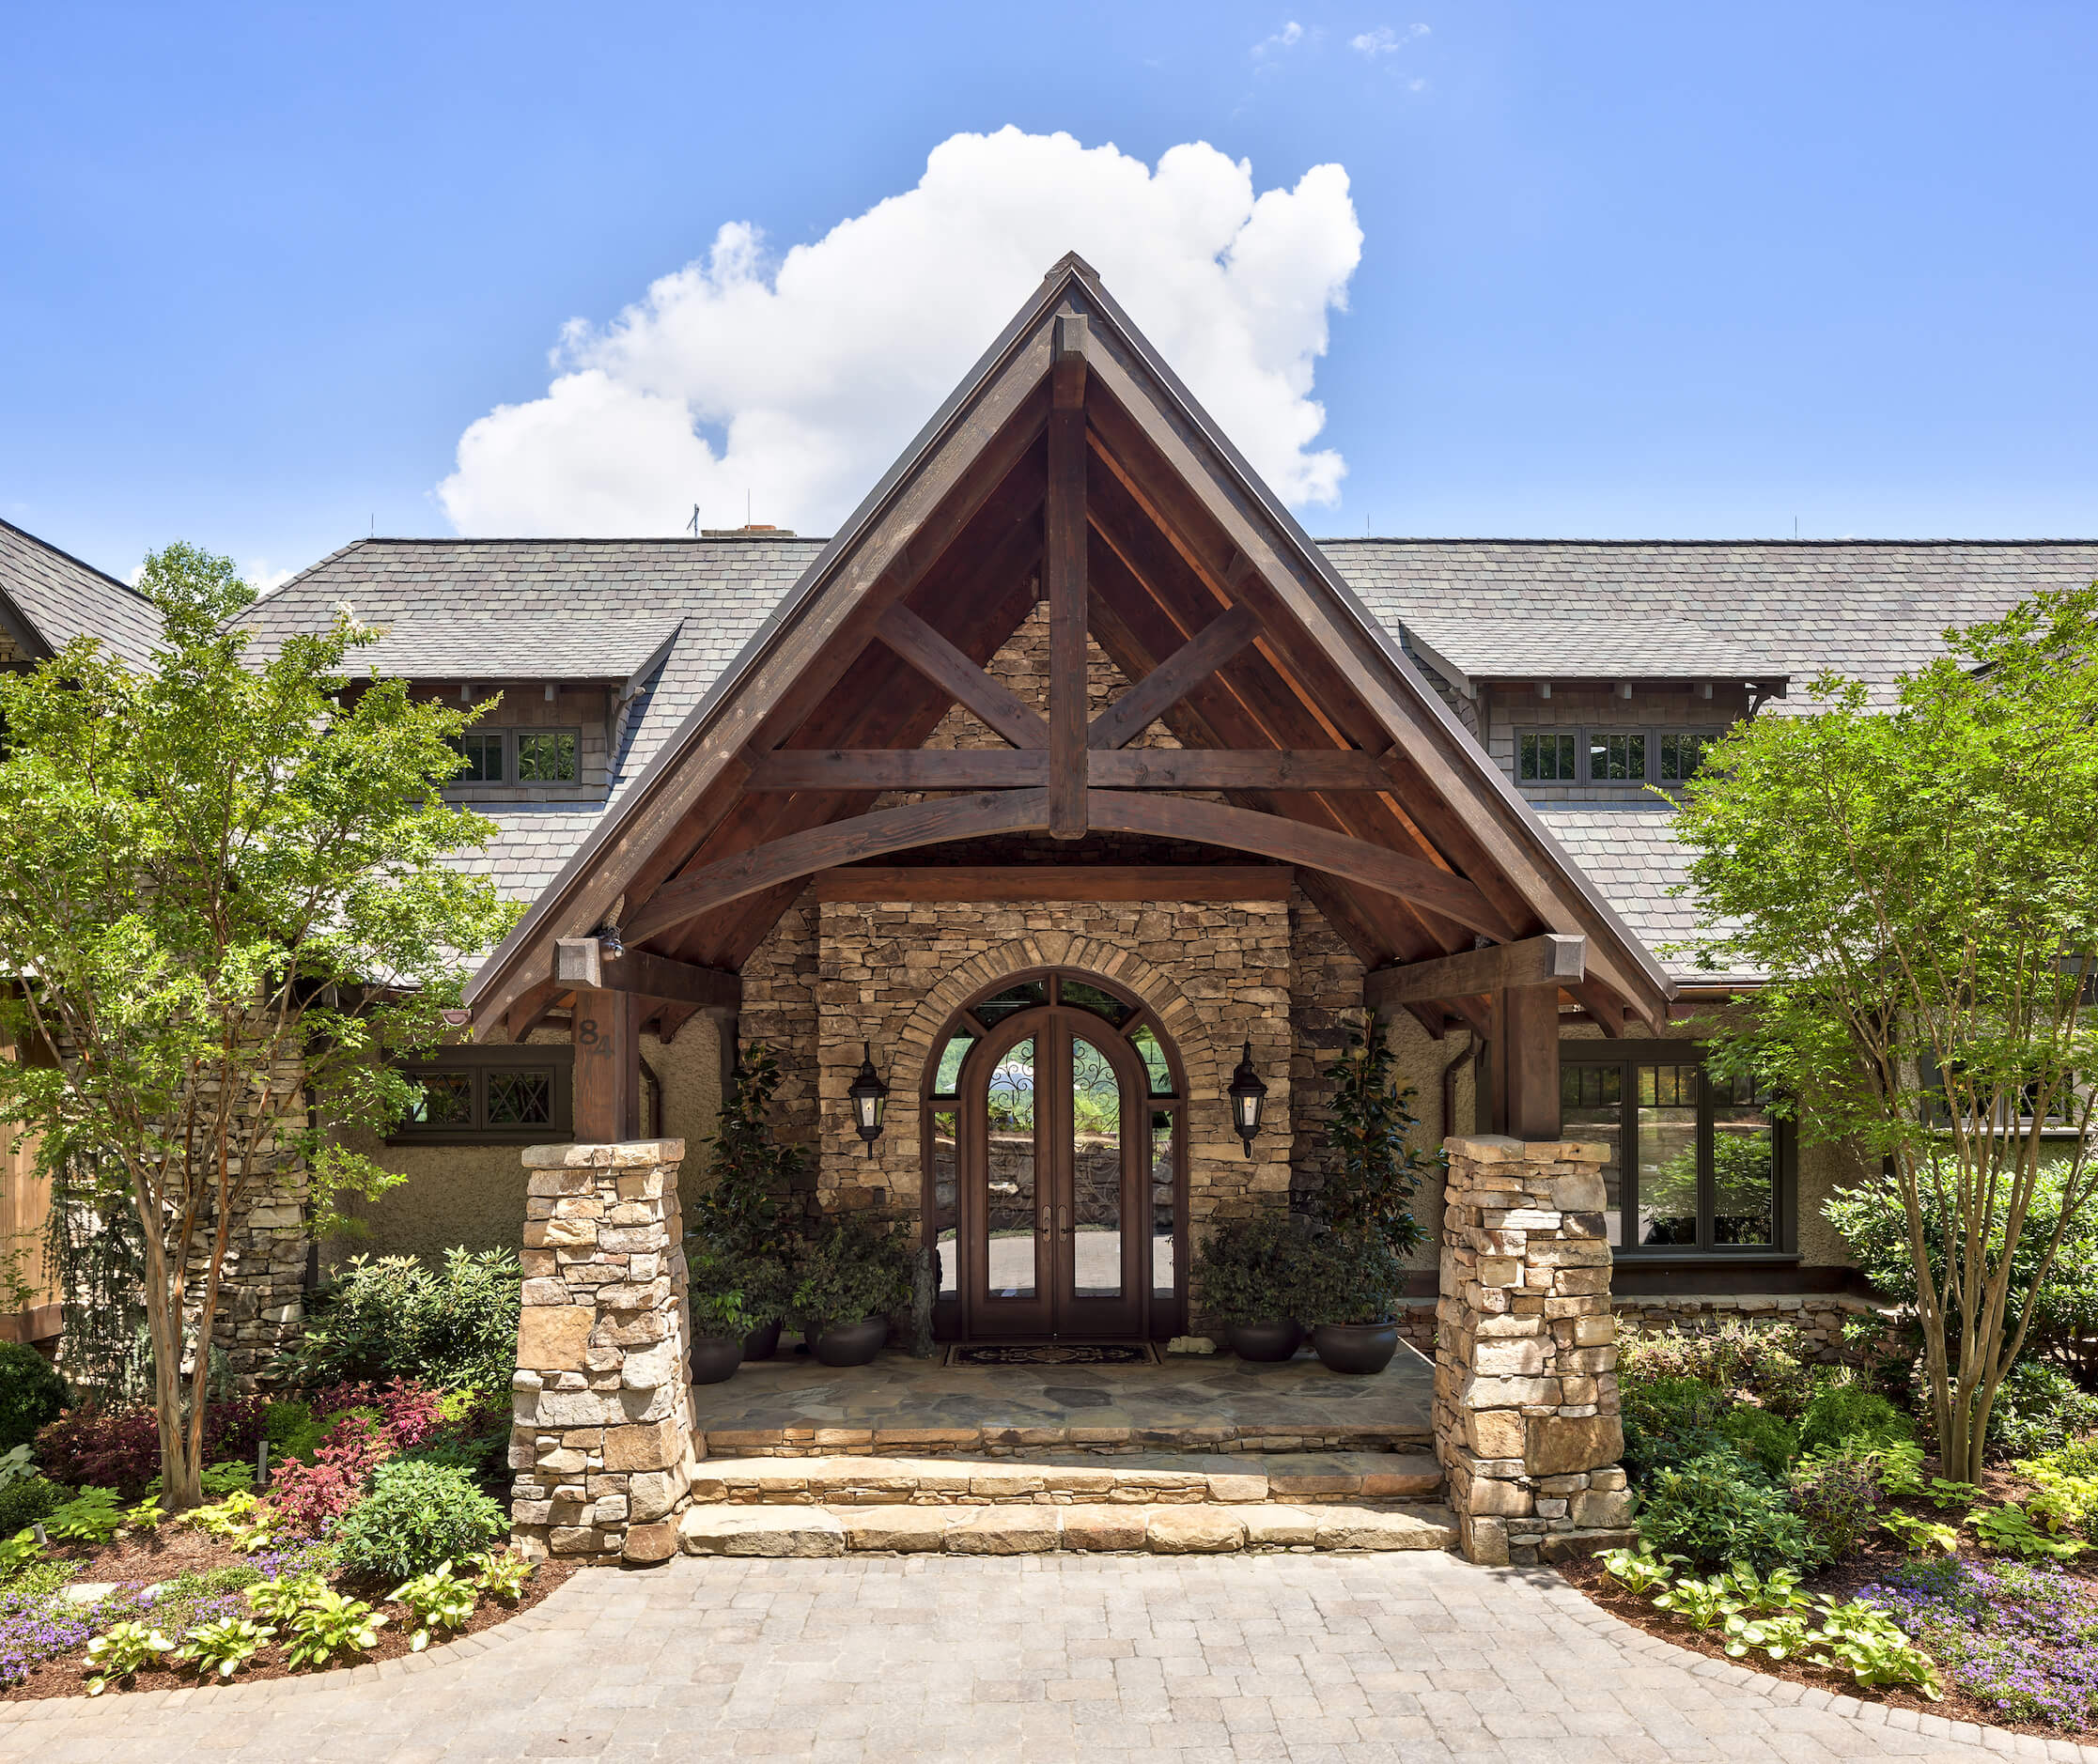 The grand entrance makes use of stone and natural wood exposed beams for a bold, rustic greeting to those entering the home. From the drive, the interior is made private via obscured windows and shading.